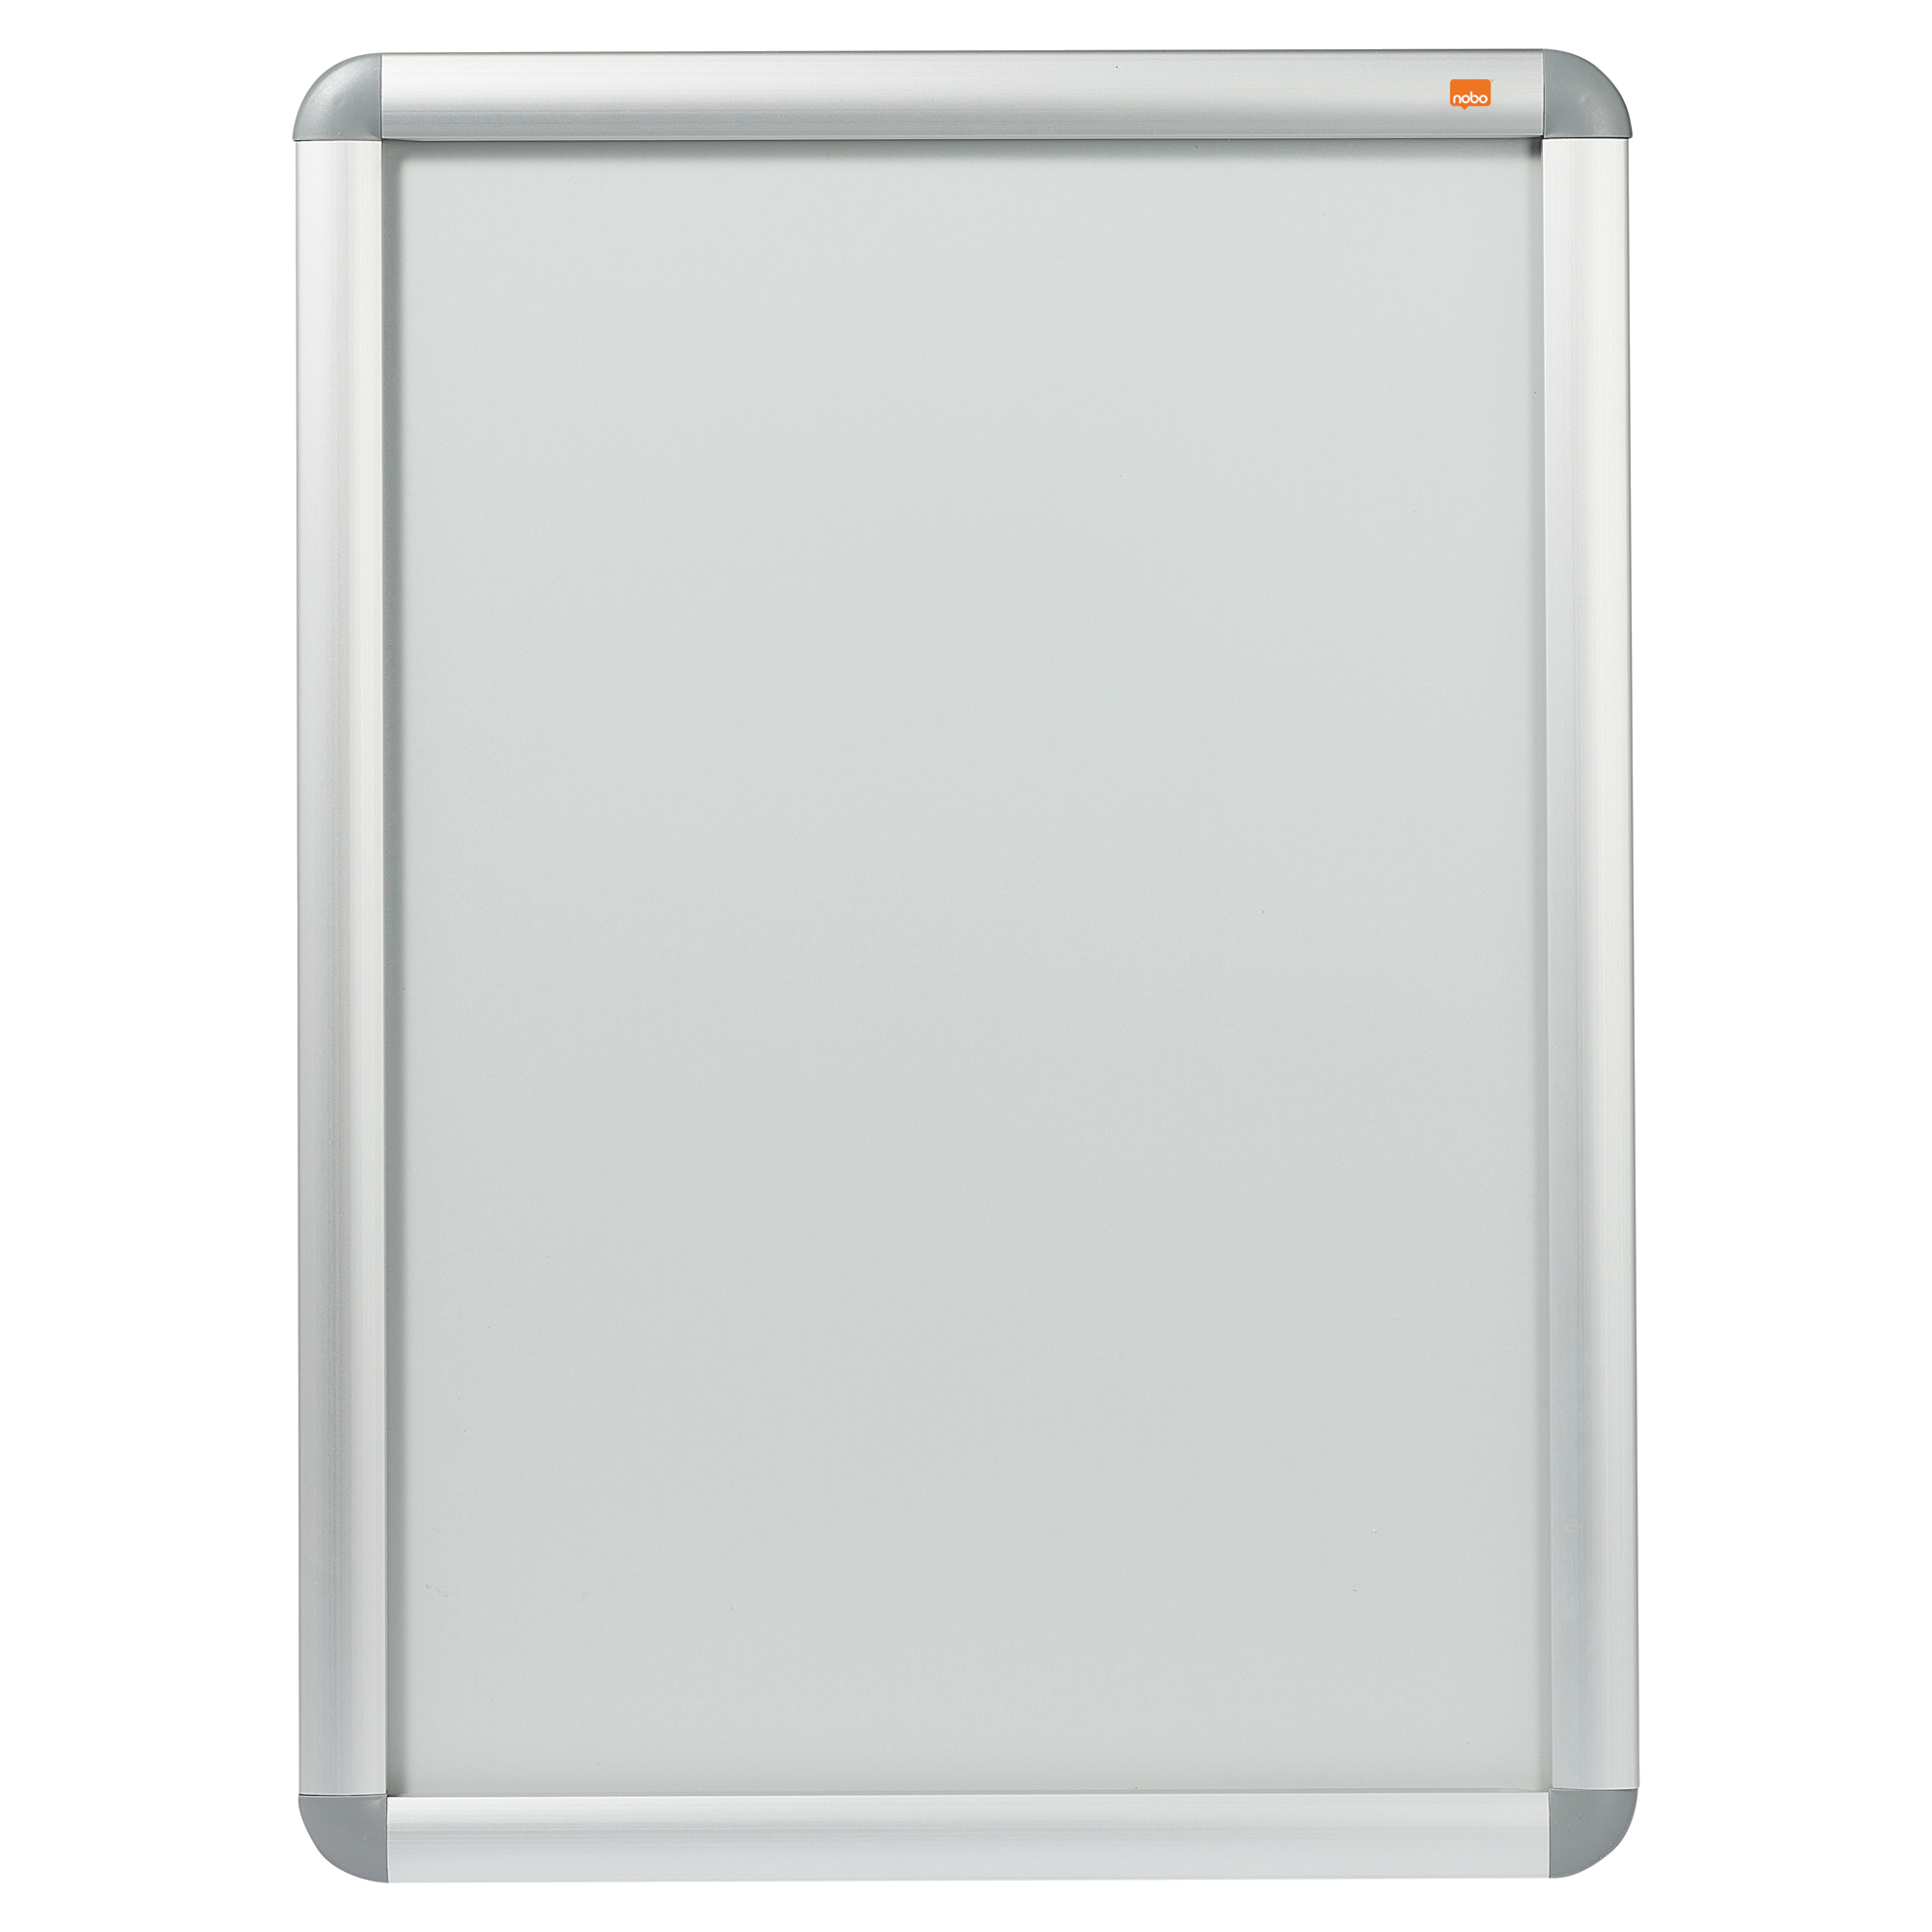 Nobo Clip-Down Frame Aluminium Front-Opening 594x420mm A2